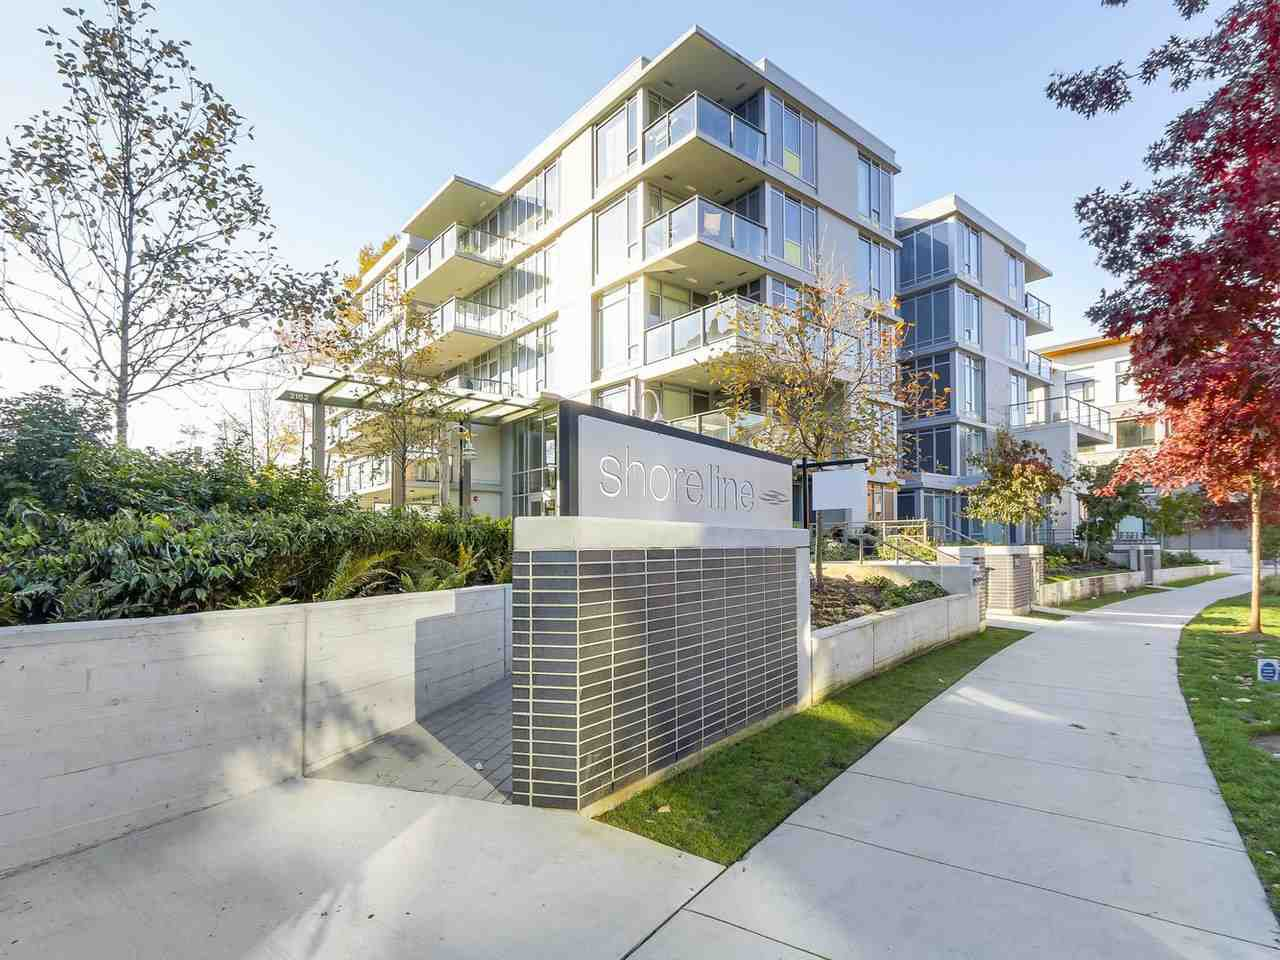 "Main Photo: 402 3162 RIVERWALK Avenue in Vancouver: Champlain Heights Condo for sale in ""SHORELINE"" (Vancouver East)  : MLS®# R2220256"